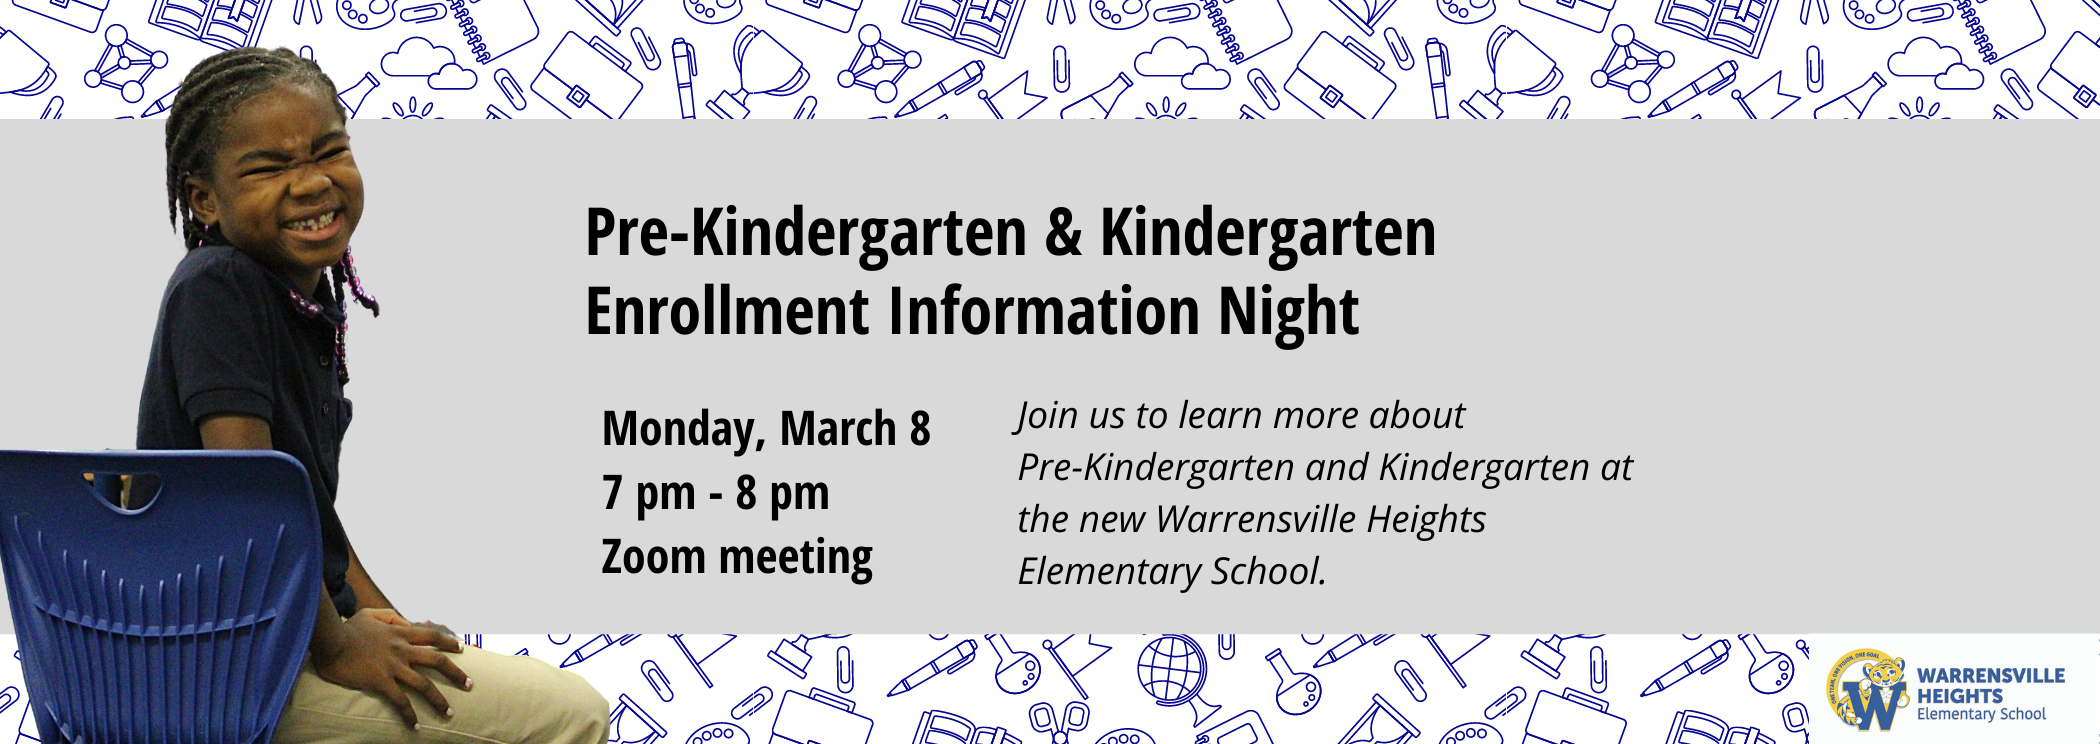 Pre-Kindergarten & Kindergarten Enrollment Information Night Monday March 8 7 pm - 8 pm via Zoom Meeting. Join us to learn more about Pre-Kindergarten and Kindergarten at the new Warrensville Heights Elementary School.